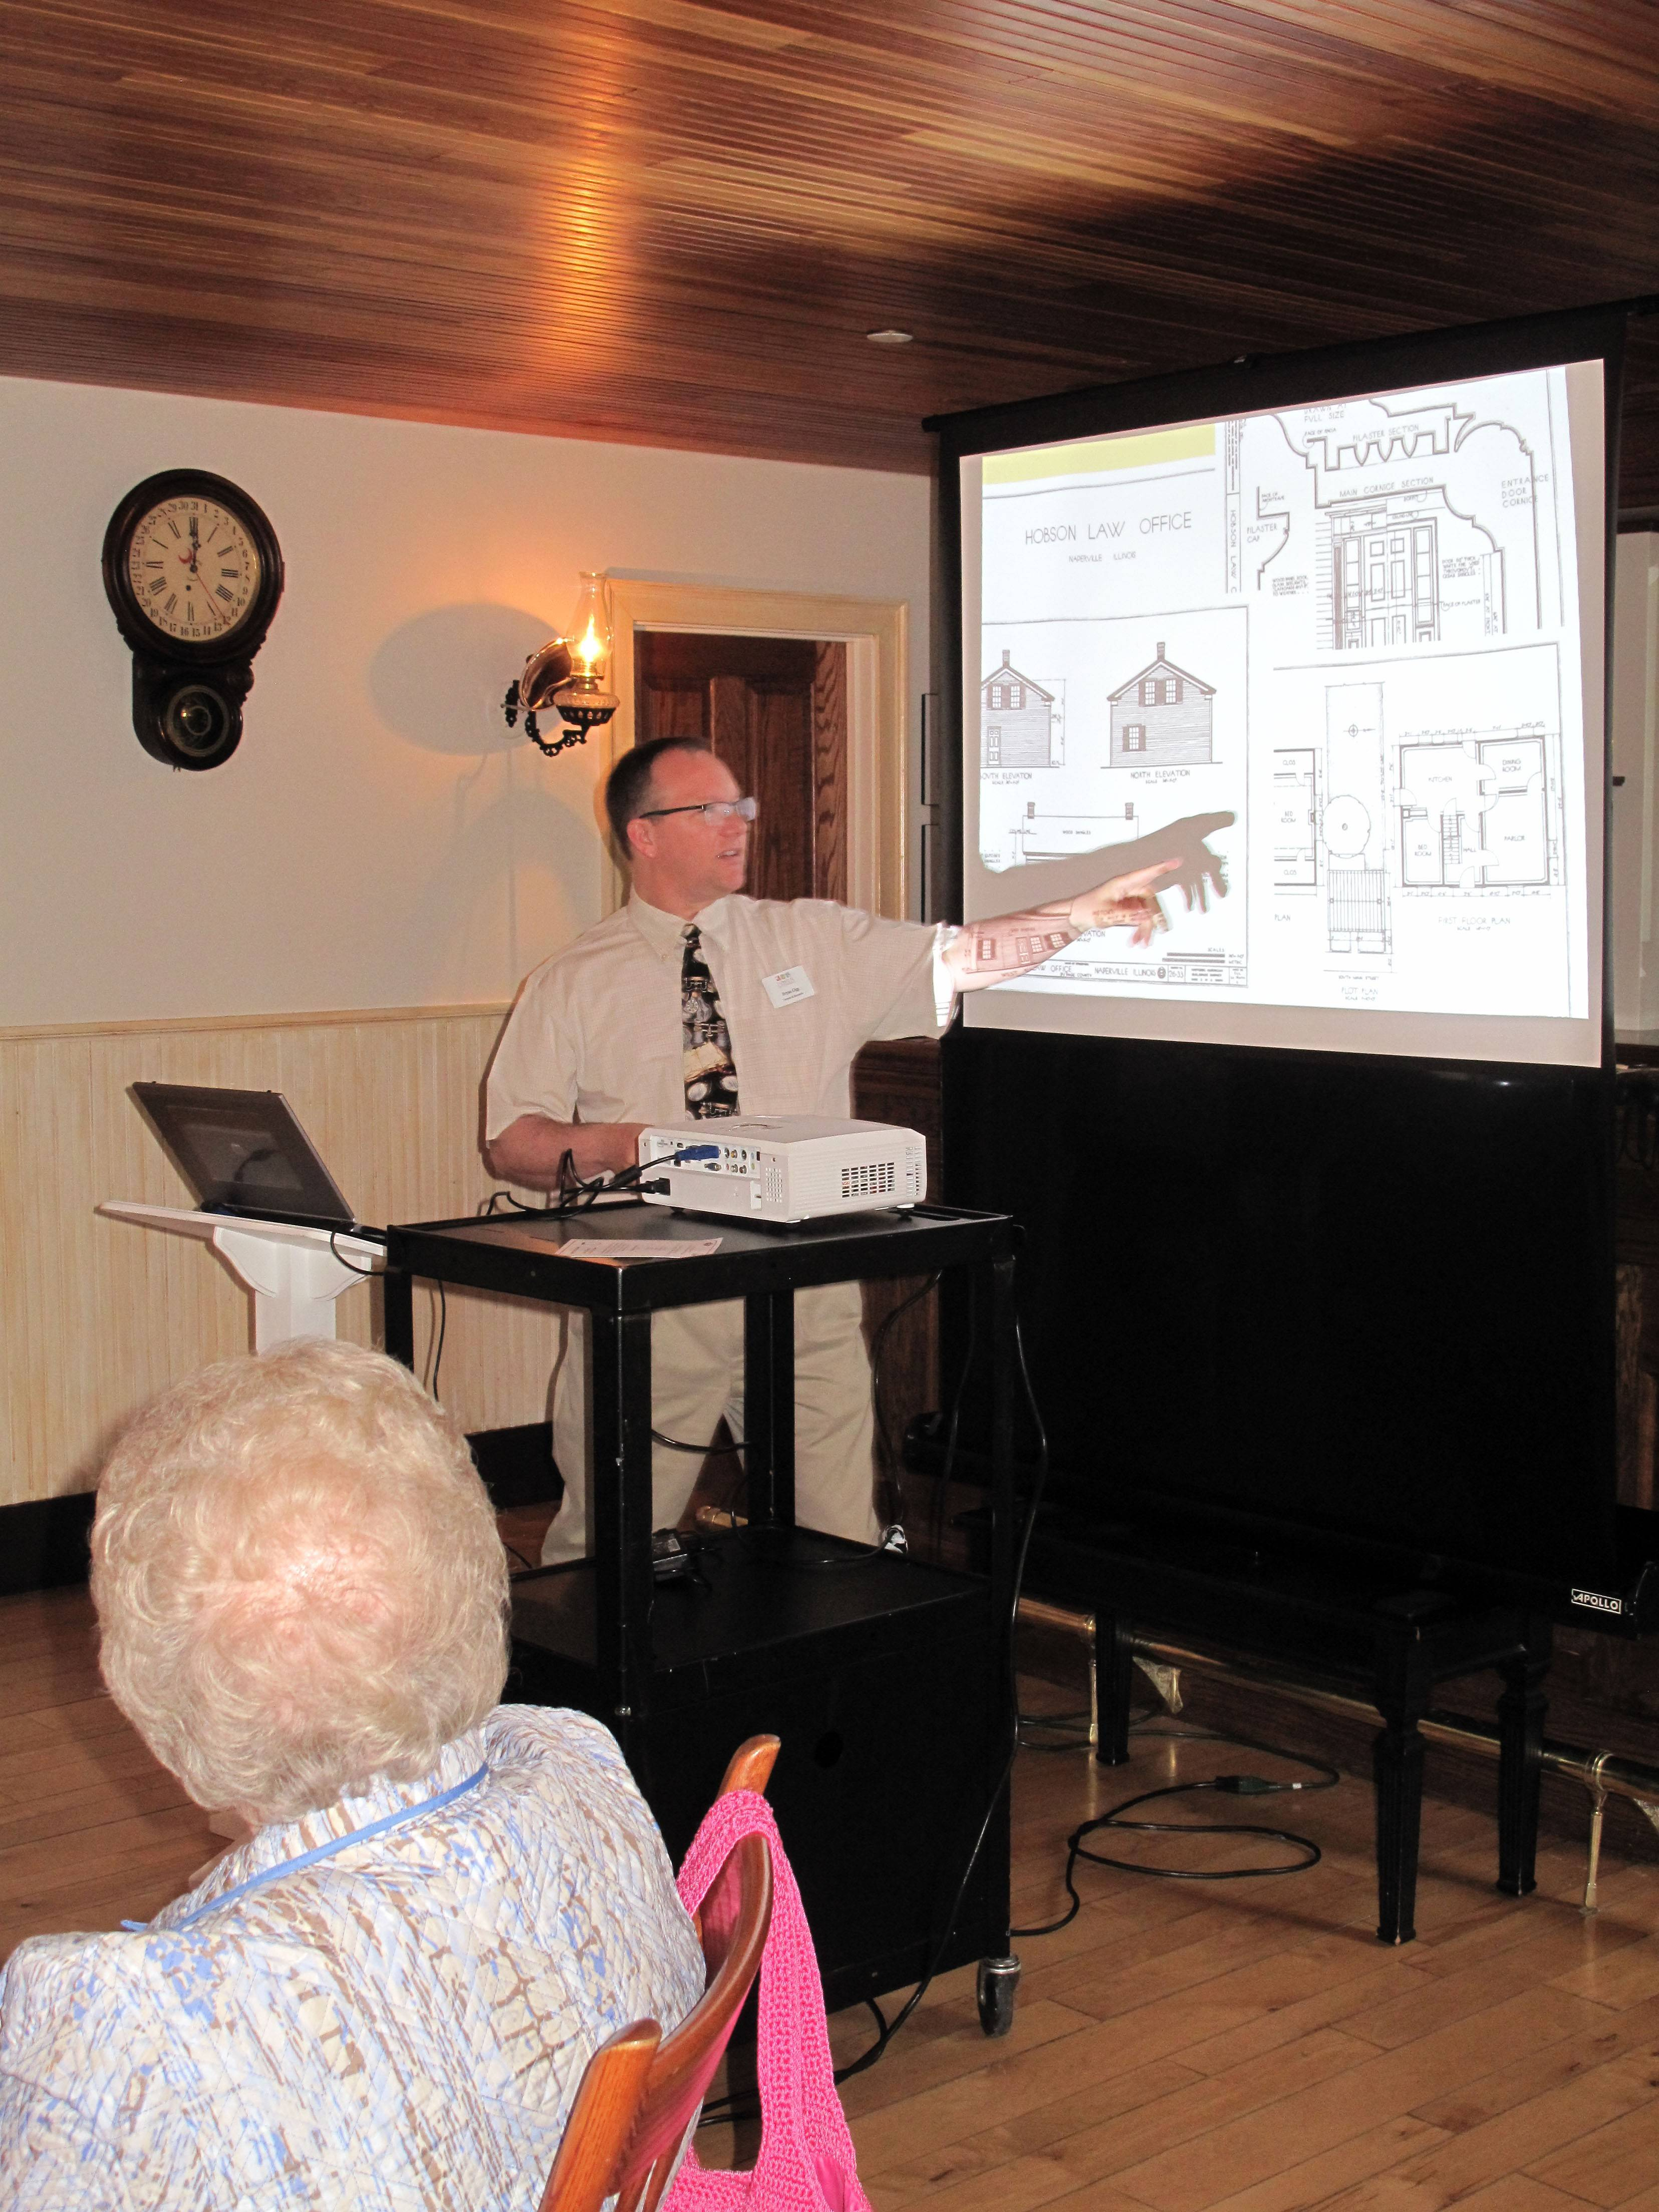 Bryan Ogg, curator of research for Naper Settlement, explains the process of historical research by which he discovered a building on the museum's property had a different purpose than originally thought.